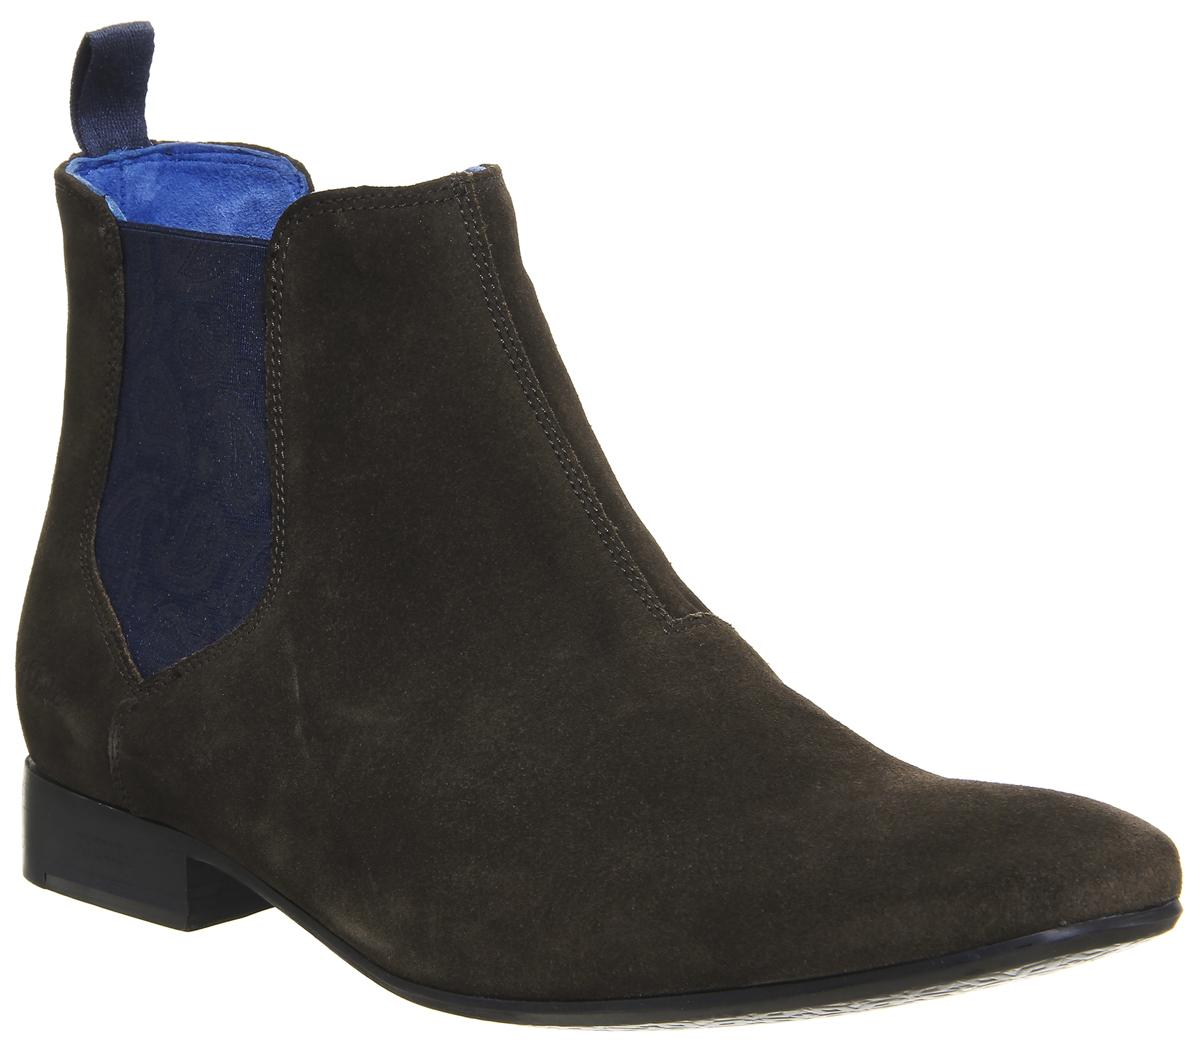 Ted Baker Hourb 2 Chelsea Boot Brown